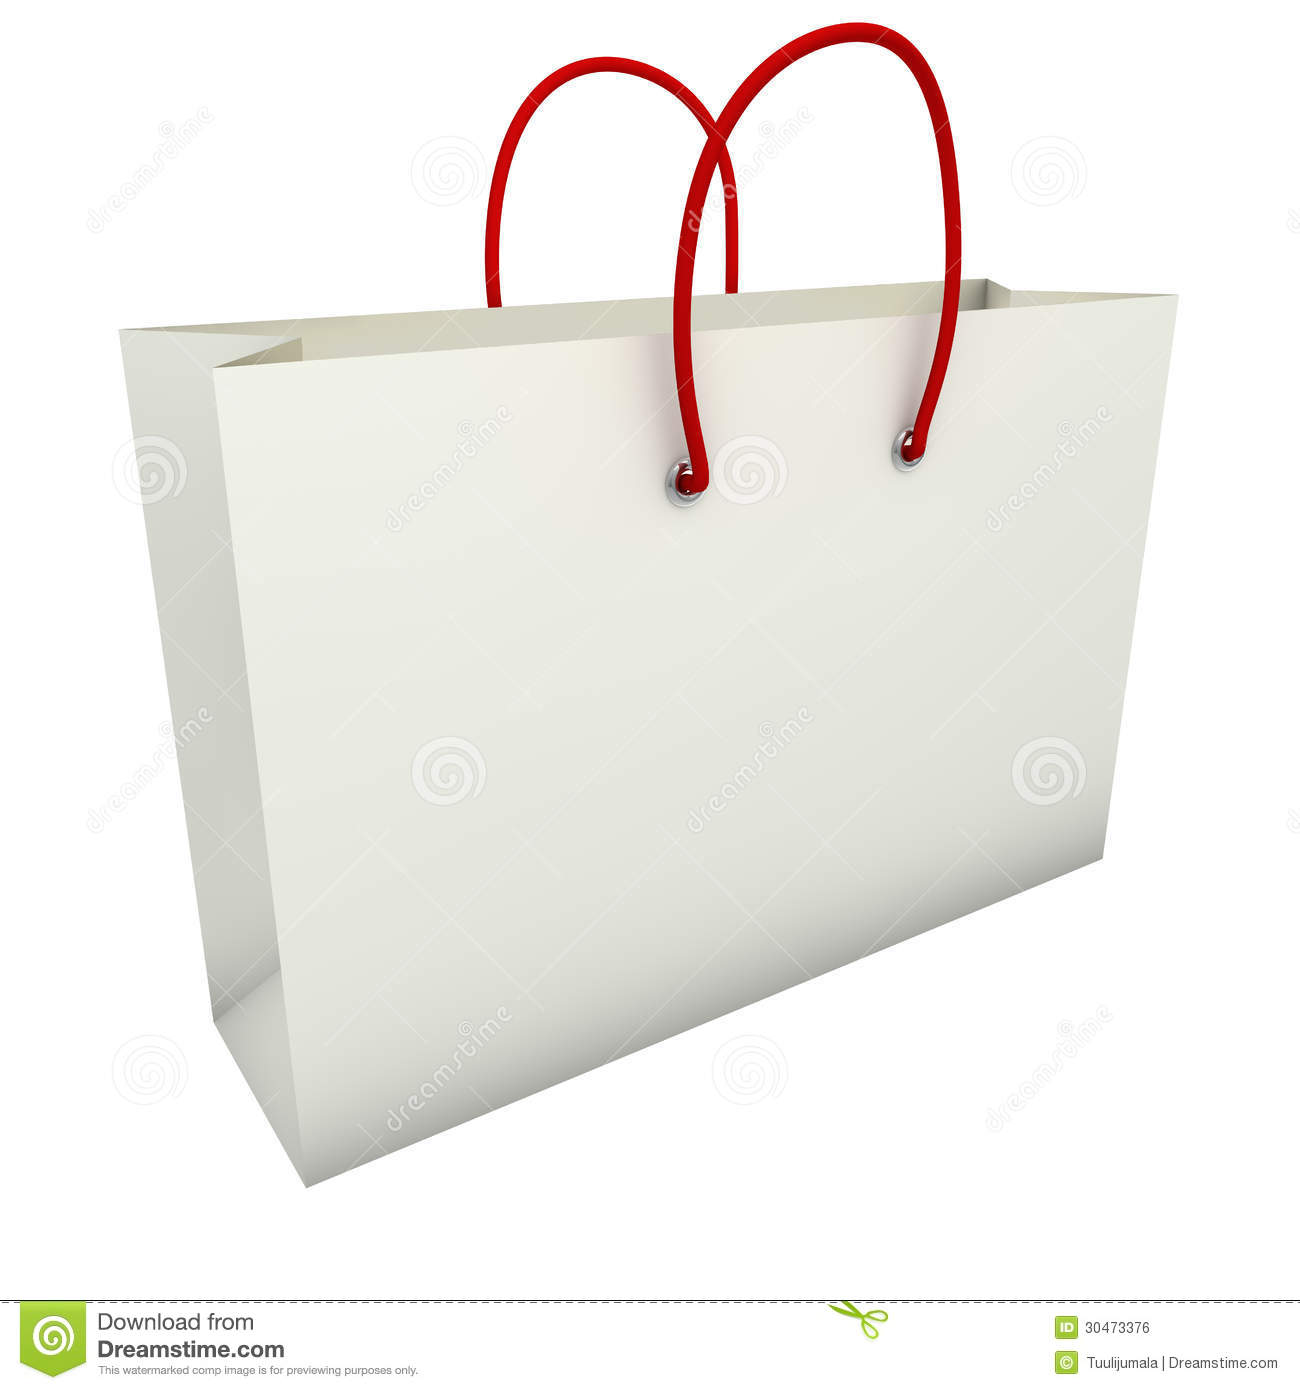 Empty White Shopping Bag With Red Handles Royalty Free Stock Image ...